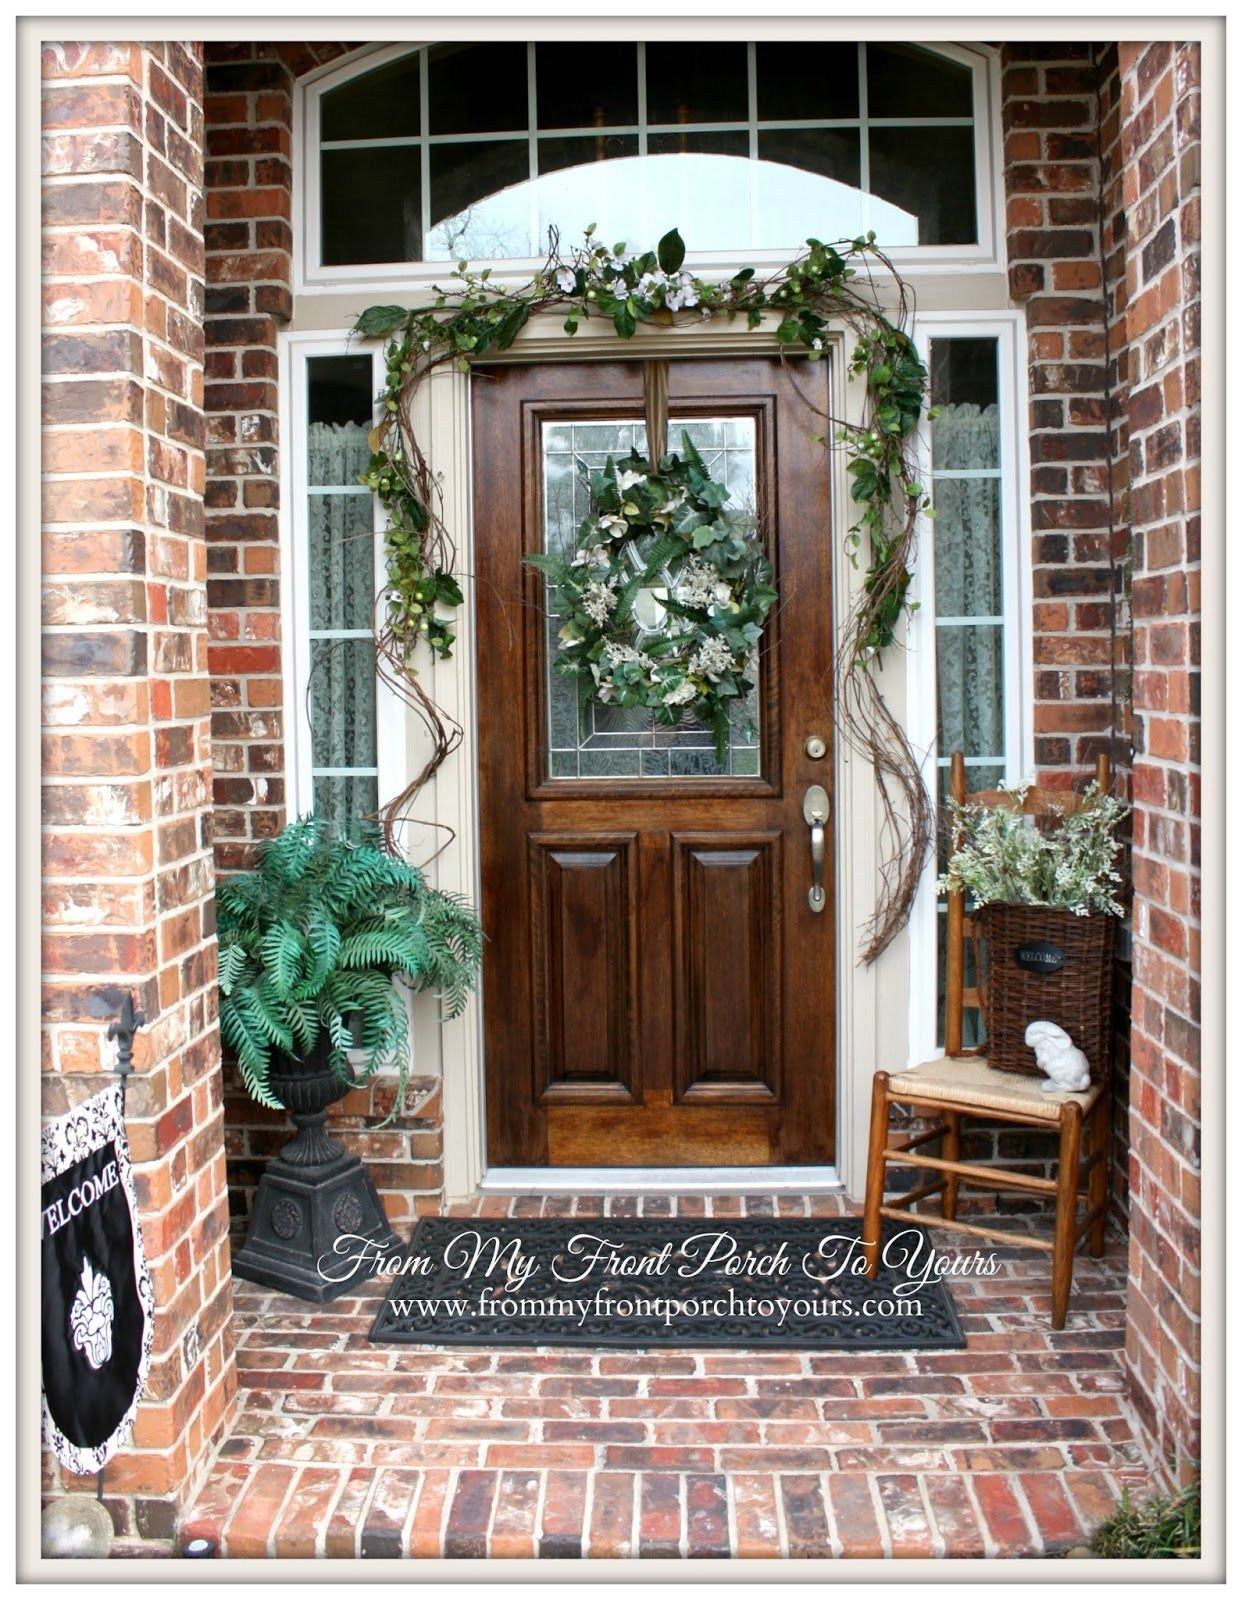 From My Front Porch to Yours - Home Tour | Front porches, Porch and ...